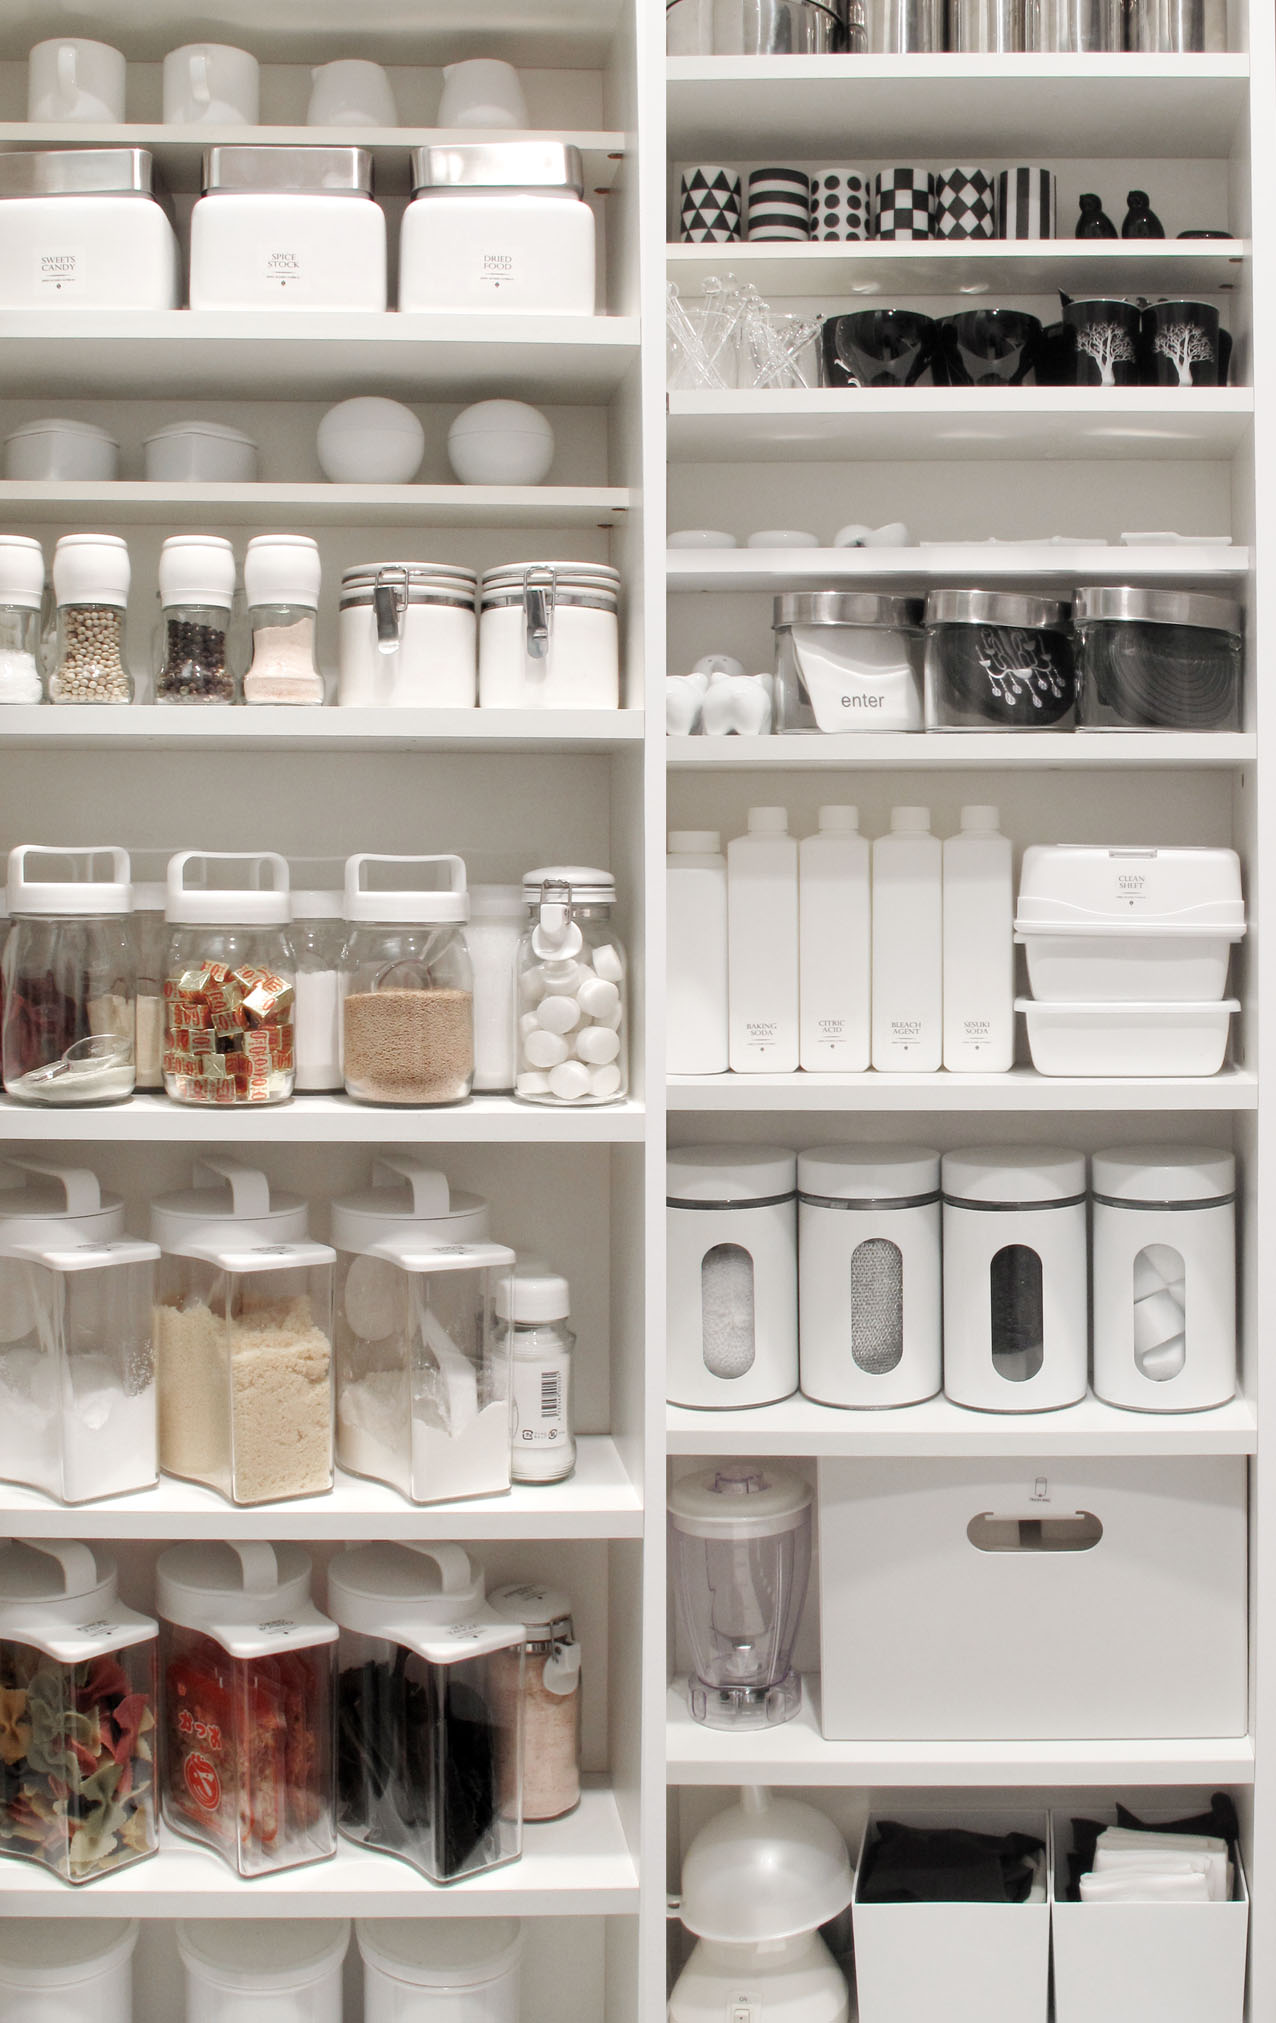 how to organize your pantry, tip for pantry organization, worlds most stylish pantry, kitchen renovation, beautiful kitchen renovation ideas, renovation ideas for stylish kitchens